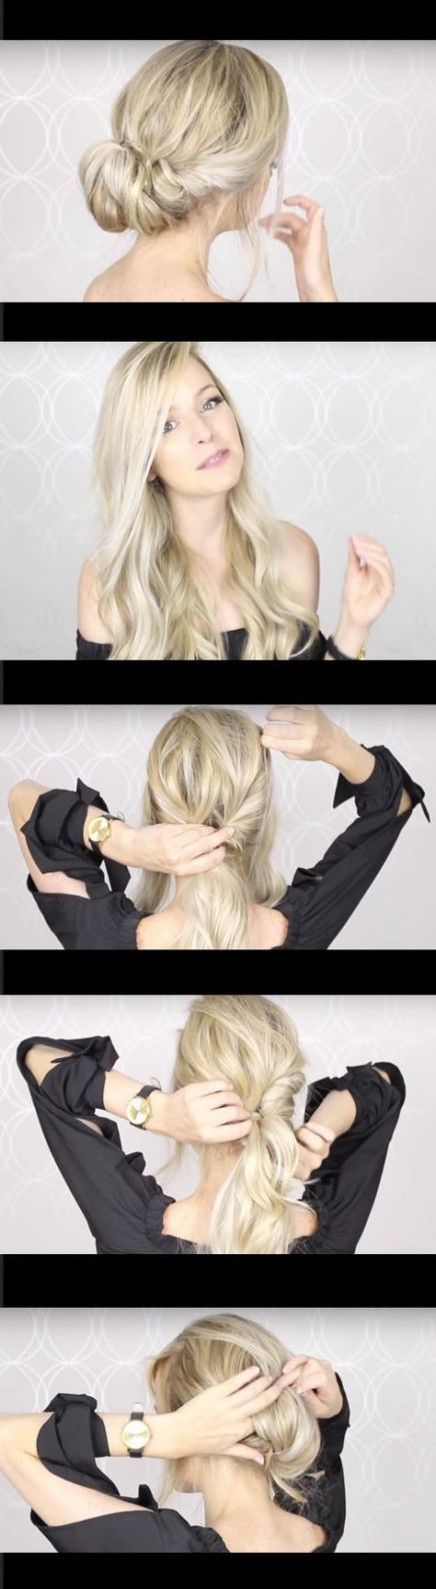 32 trendy hairstyles for school step by step braids pony tails 32 trendy hairstyles for school step by step braids pony tails